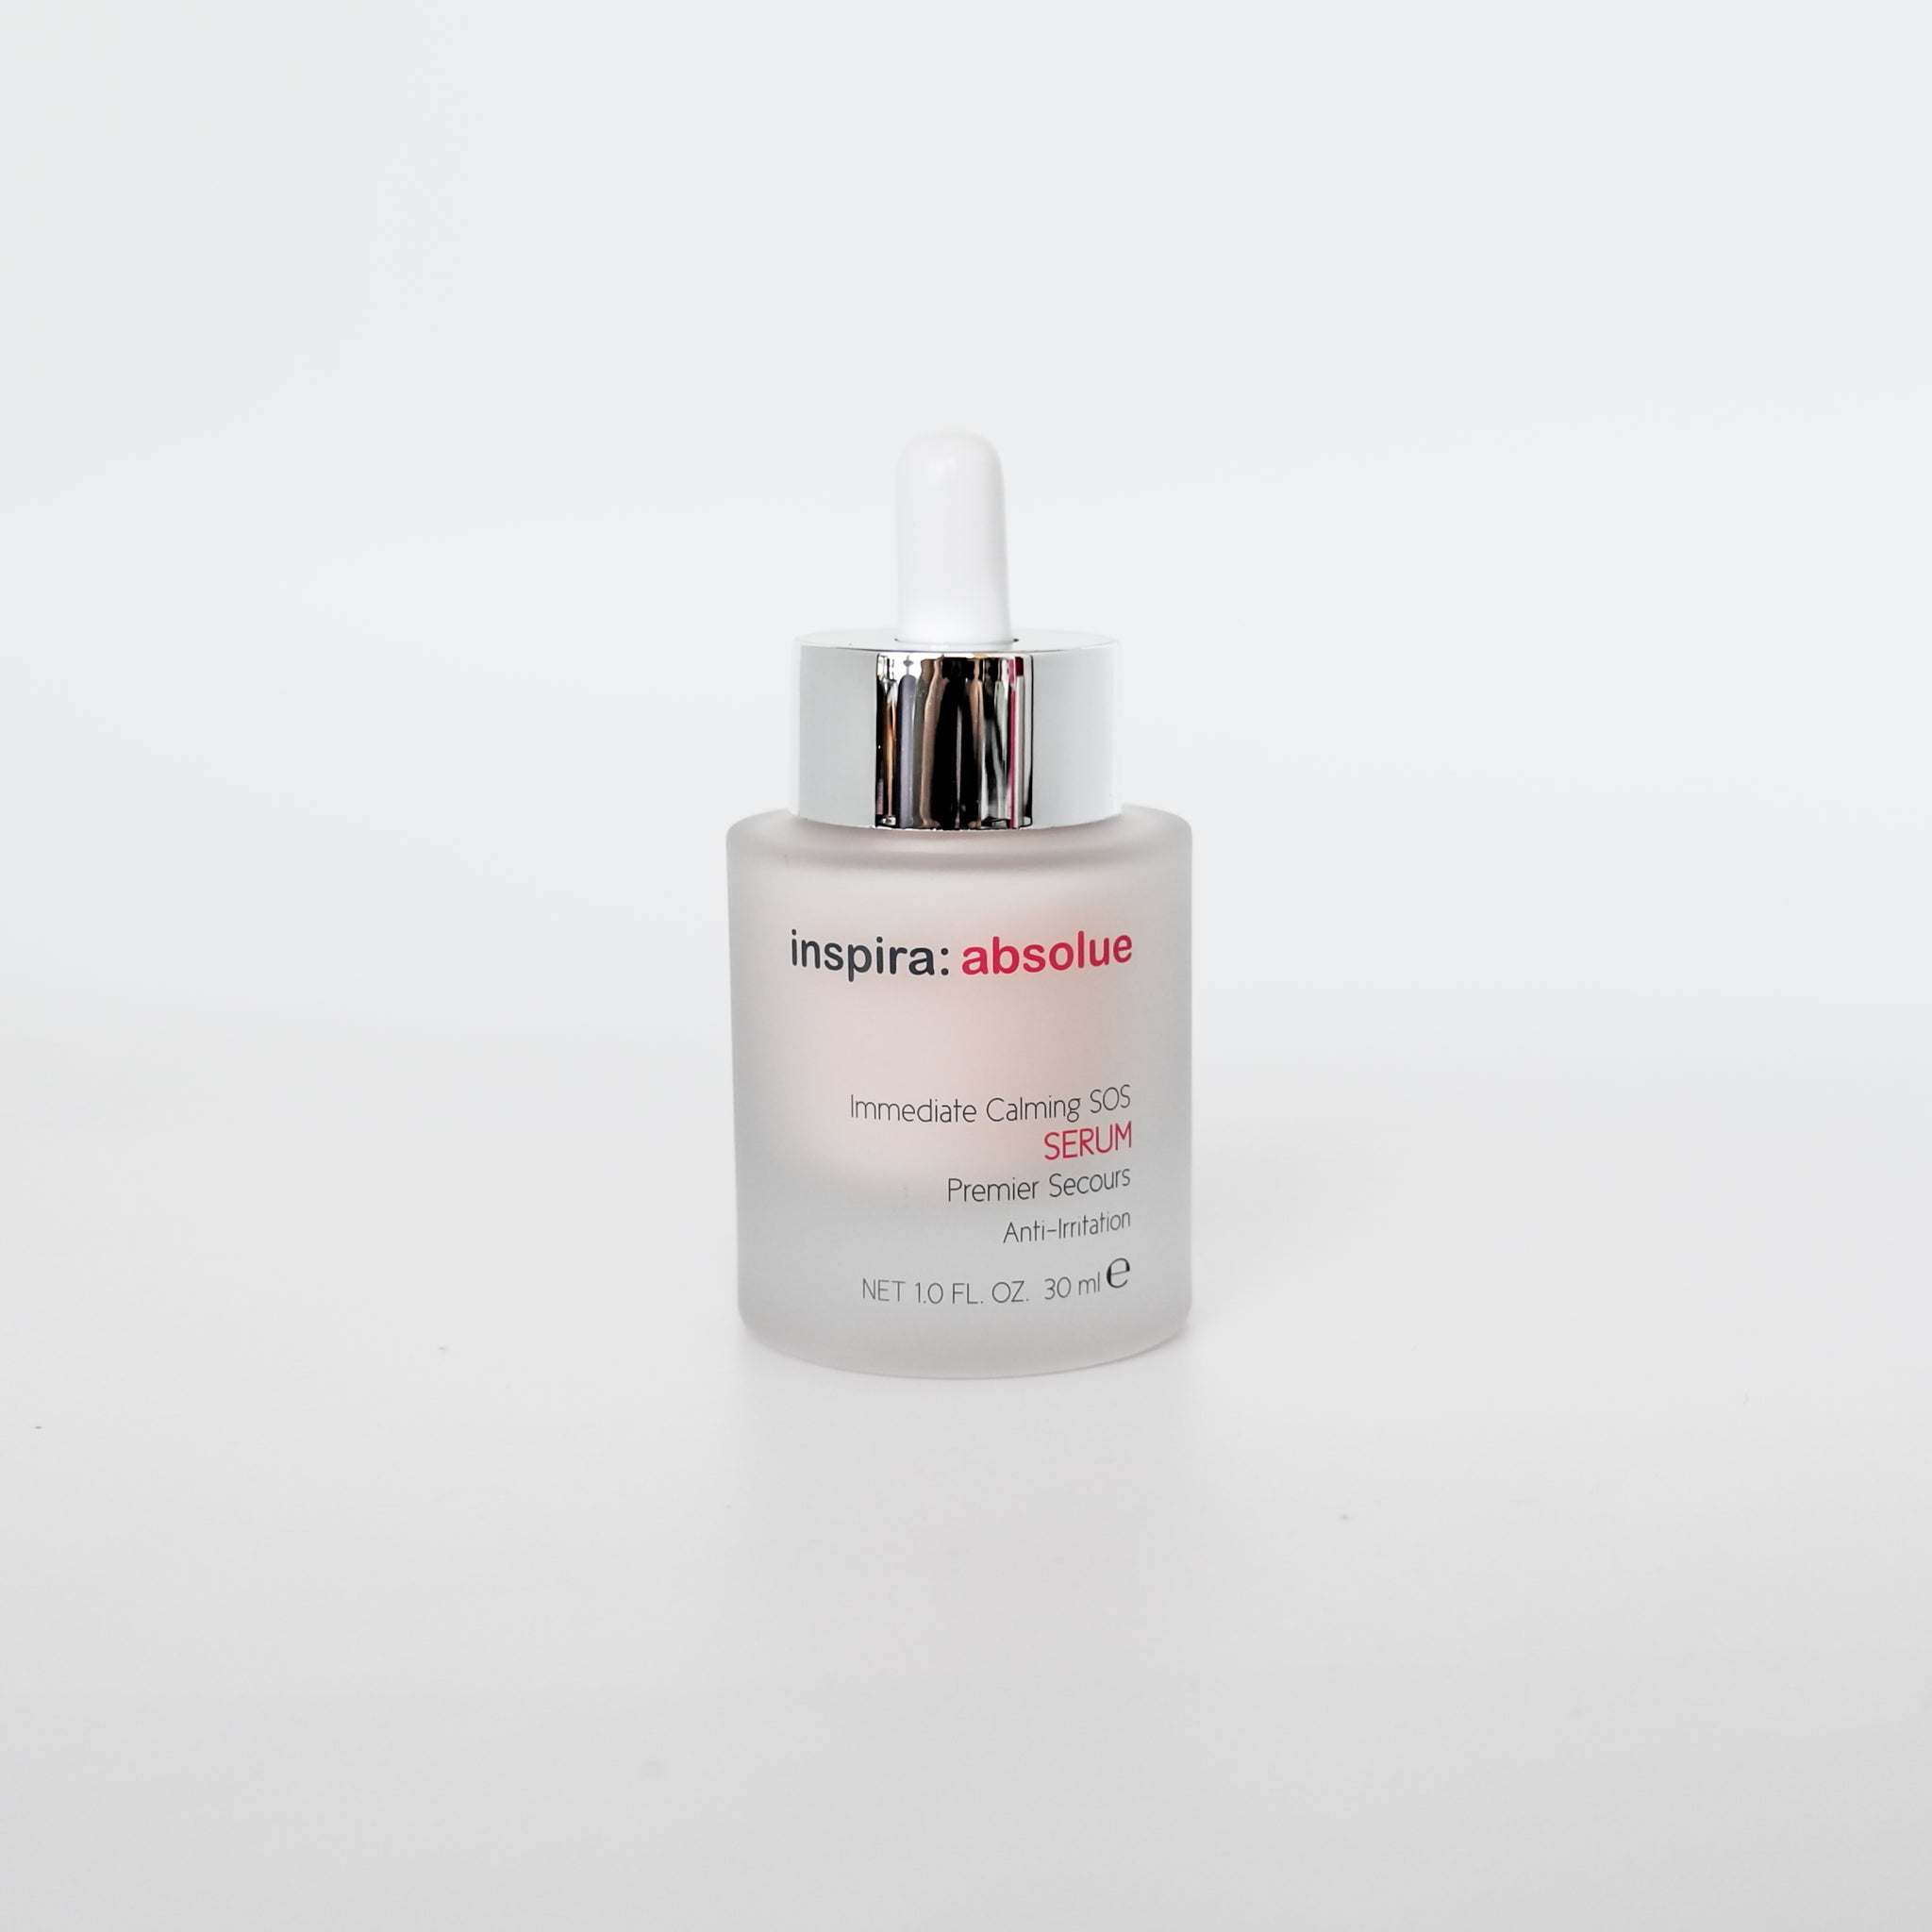 inspira:absolue Immediate Calming SOS Serum, Serums, Inspira Absolue - Astrid Wylde